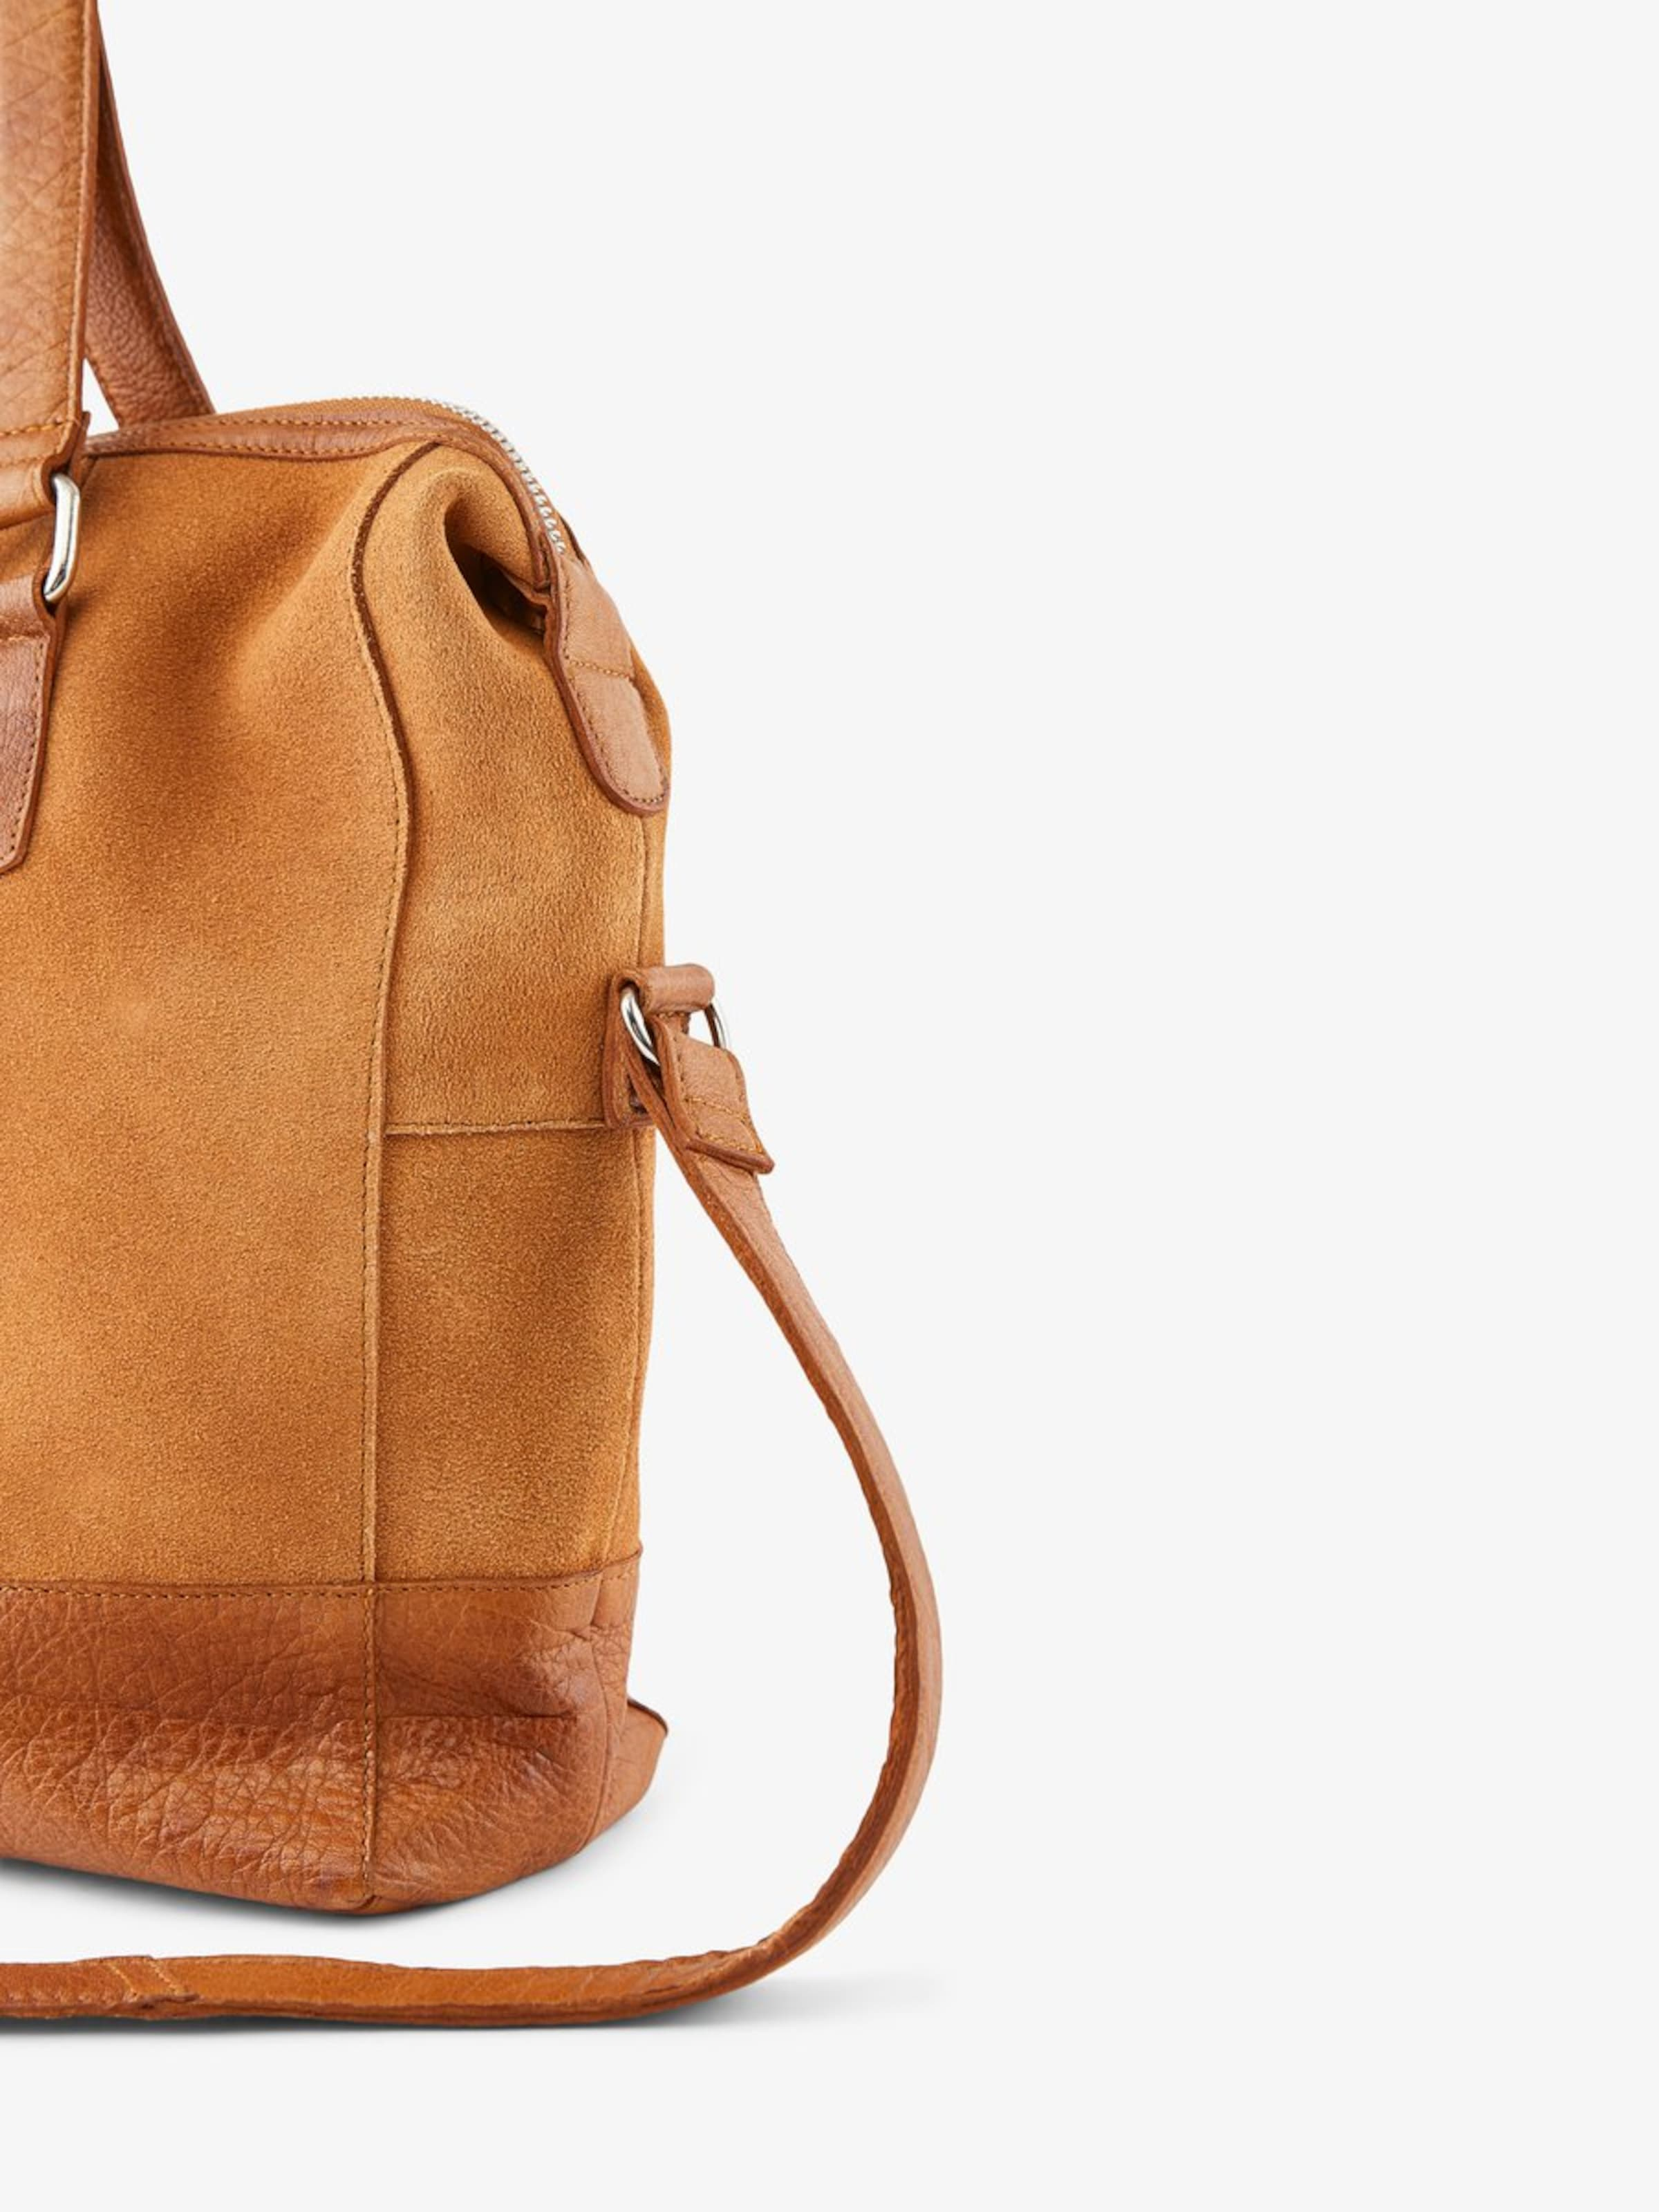 Pieces Cognac In Tasche Cognac Pieces In Pieces Tasche sxthQordCB